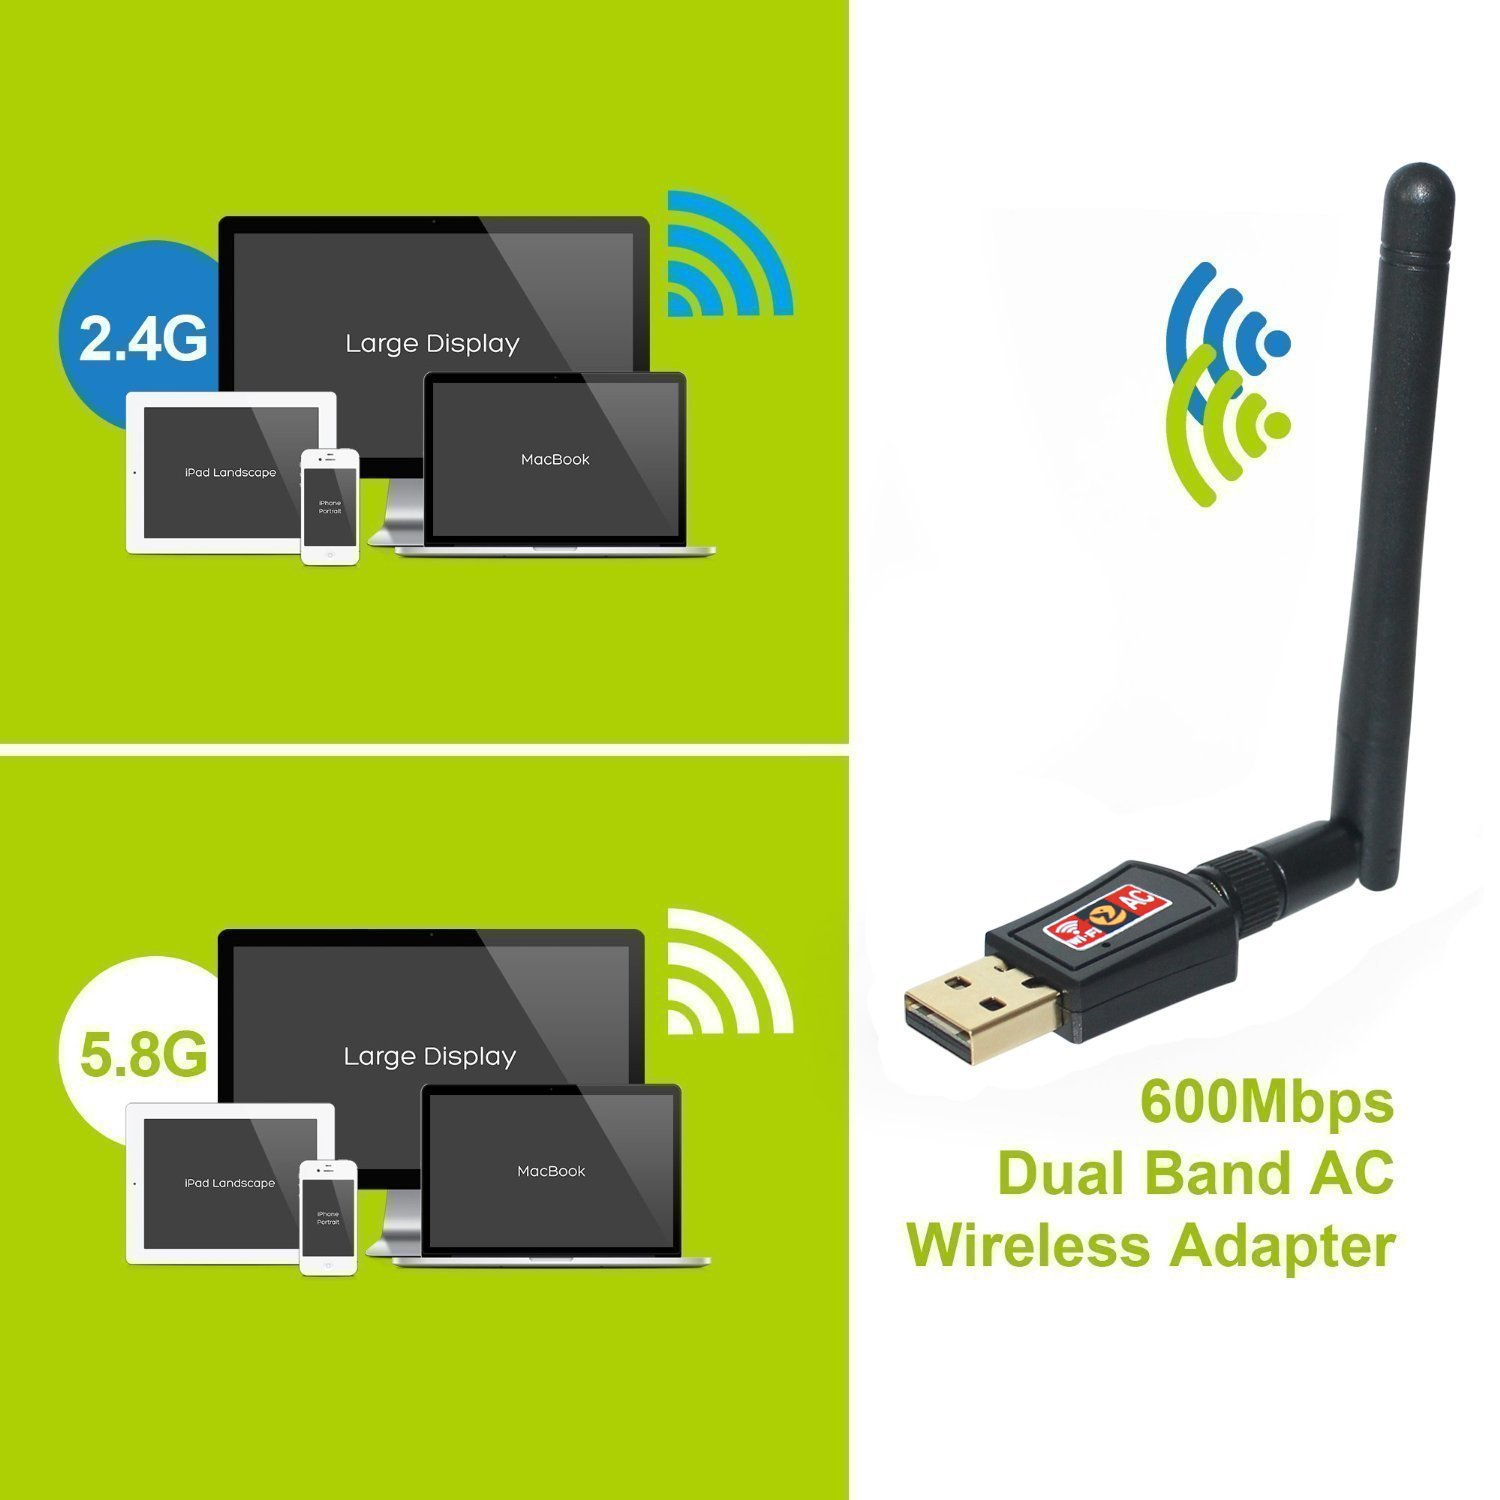 Receptor WIFI,Zoweetek® Adaptador USB inalámbrico Dual Band AC600 Wifi 2.4GHz o 5Ghz /compatible con Windows XP/7/8/8.1/Mac OS X 10.7-10.10